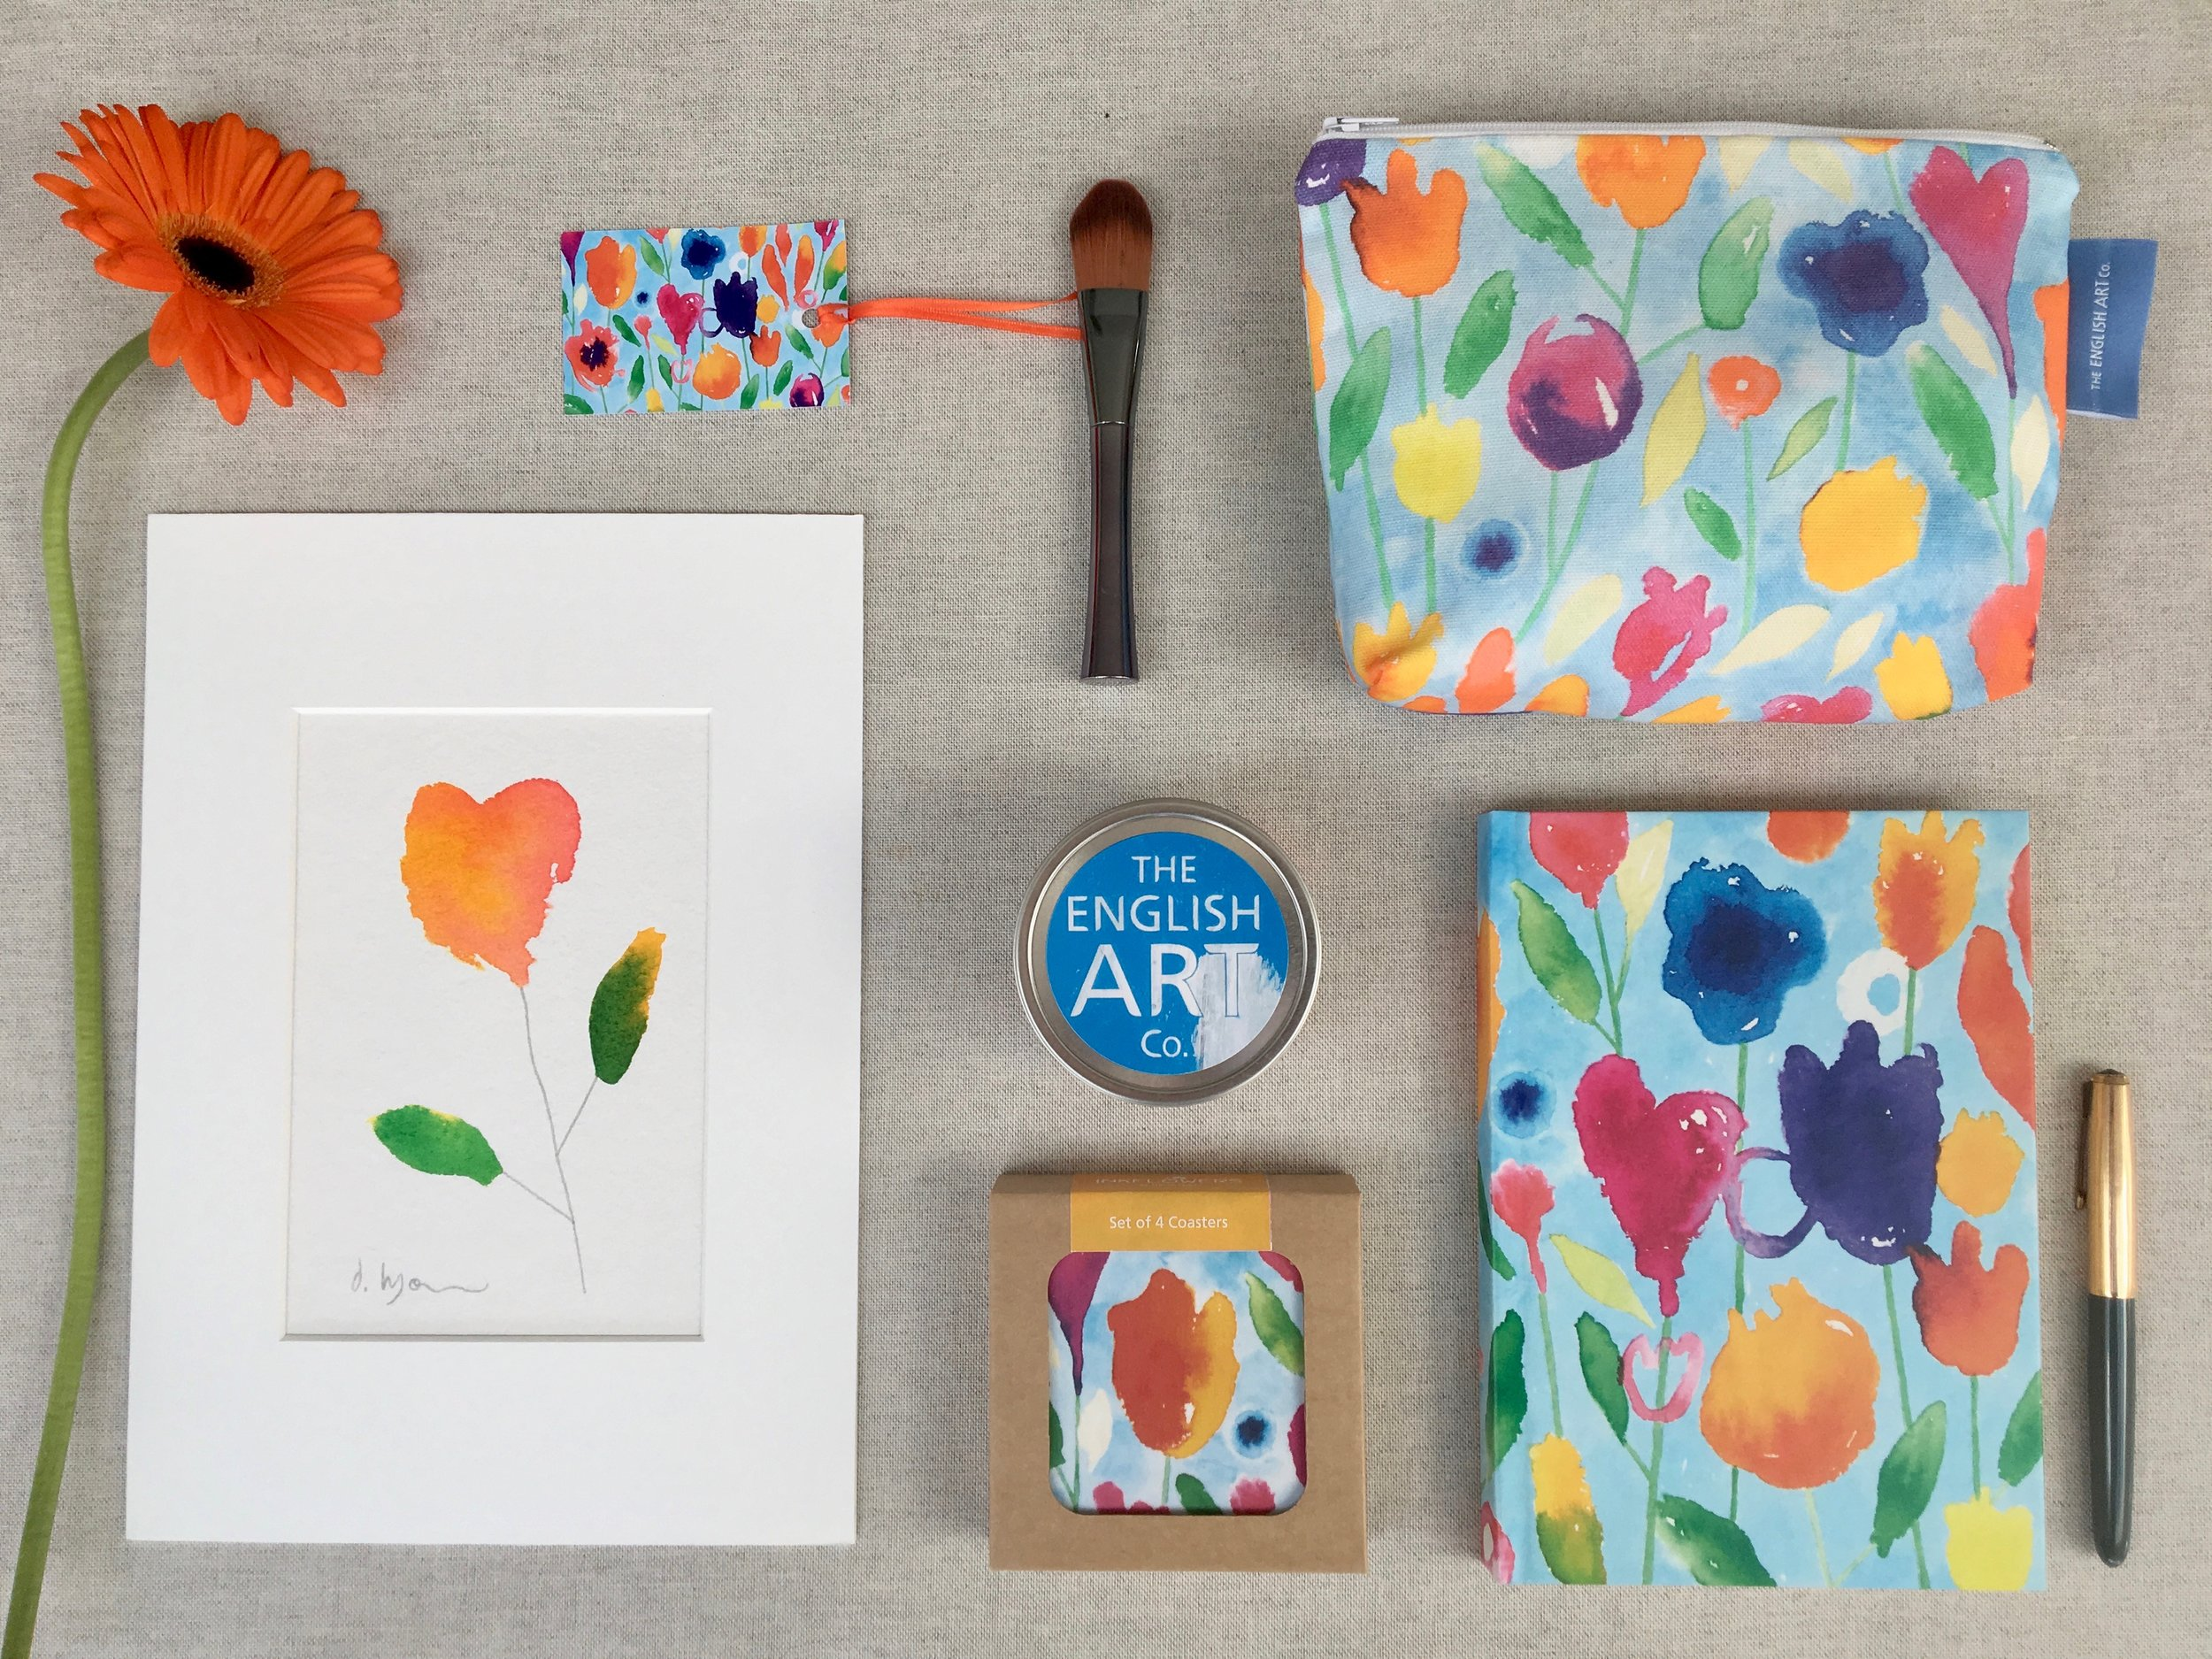 ORIGINAL PRINT,  SET OF COASTERS ,  CANDLE ,  MAKE-UP BAG  AND  NOTEBOOK - INKFLOWERS